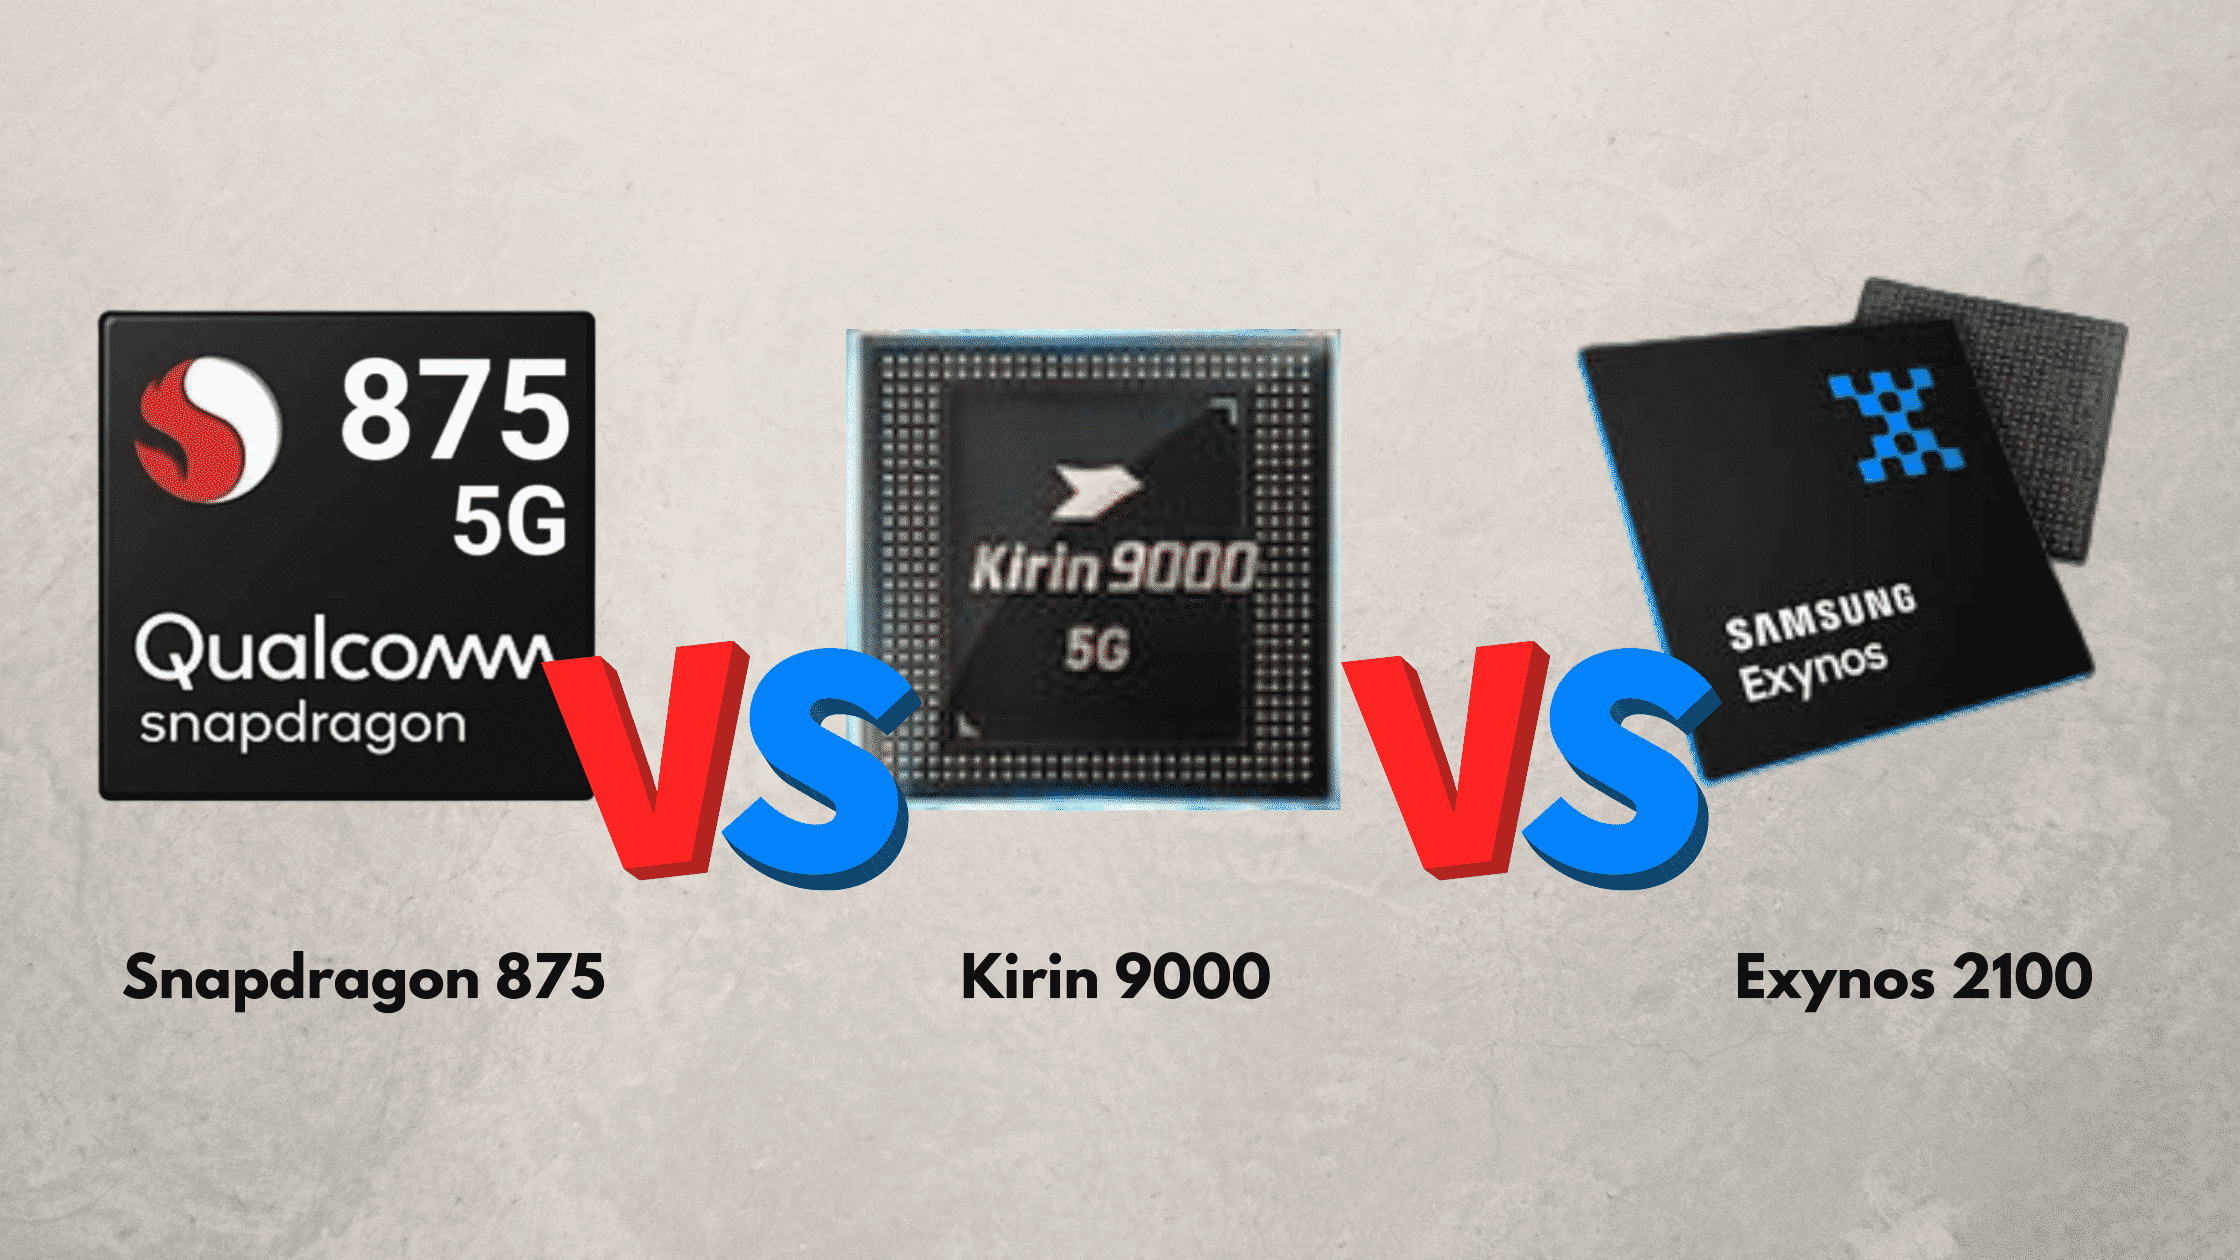 Perbandingan Snapdragon 875 vs Kirin 9000 vs Exynos 2100